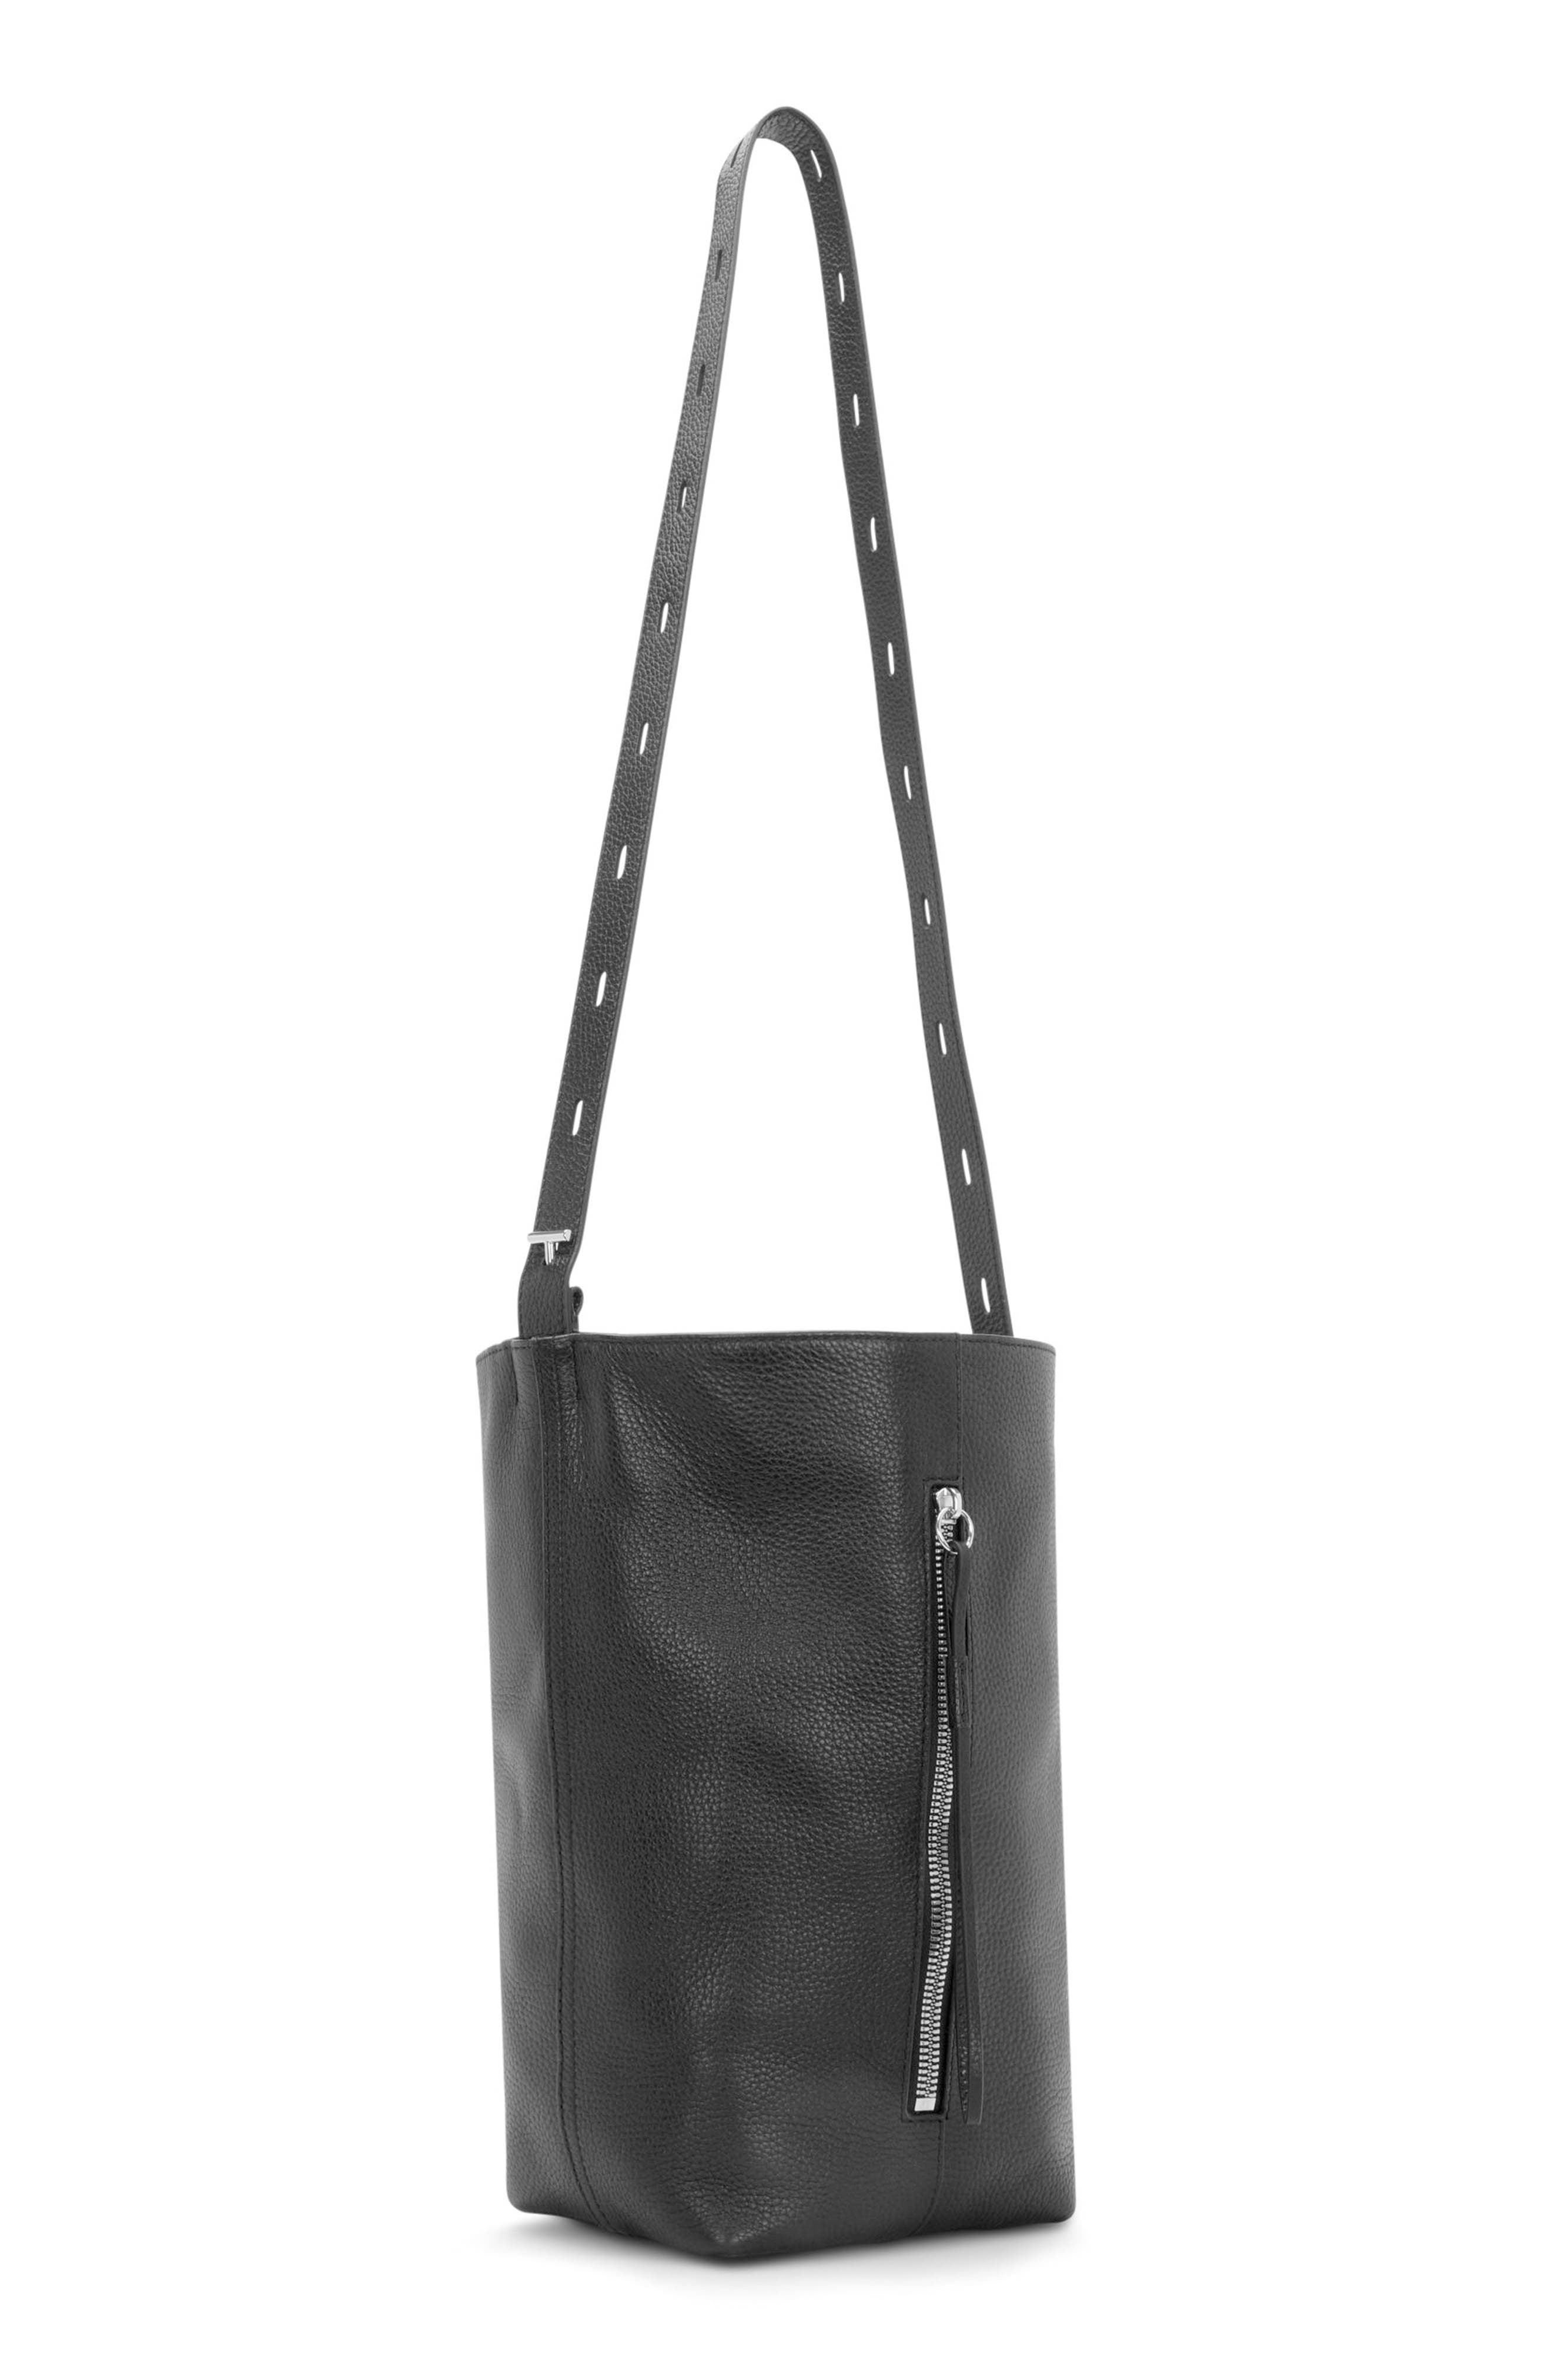 Pebbled Leather Panel Pail Convertible Leather Bucket Bag,                             Alternate thumbnail 9, color,                             001